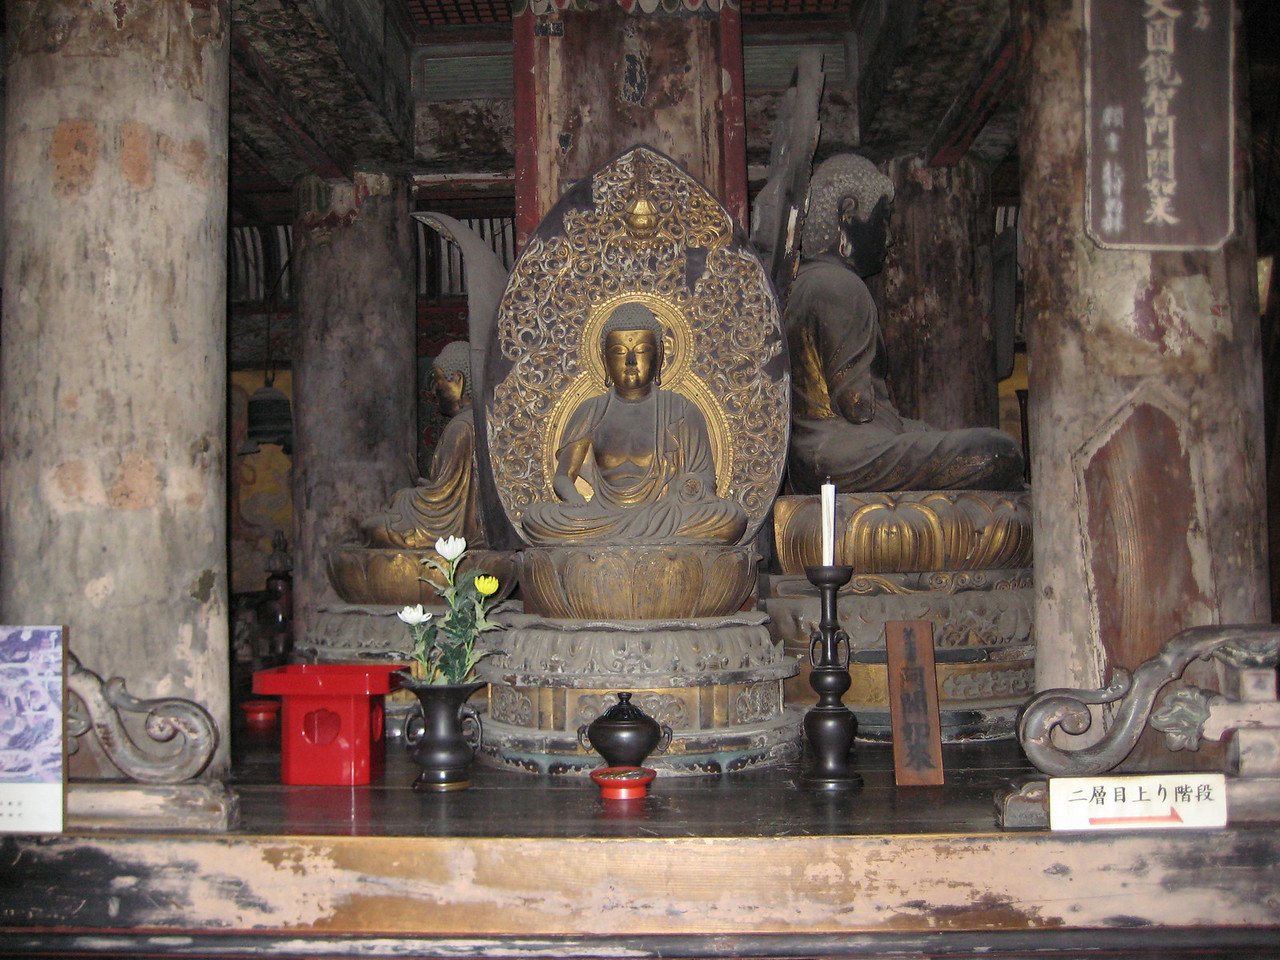 A small Buddha figure to one side of the pagoda